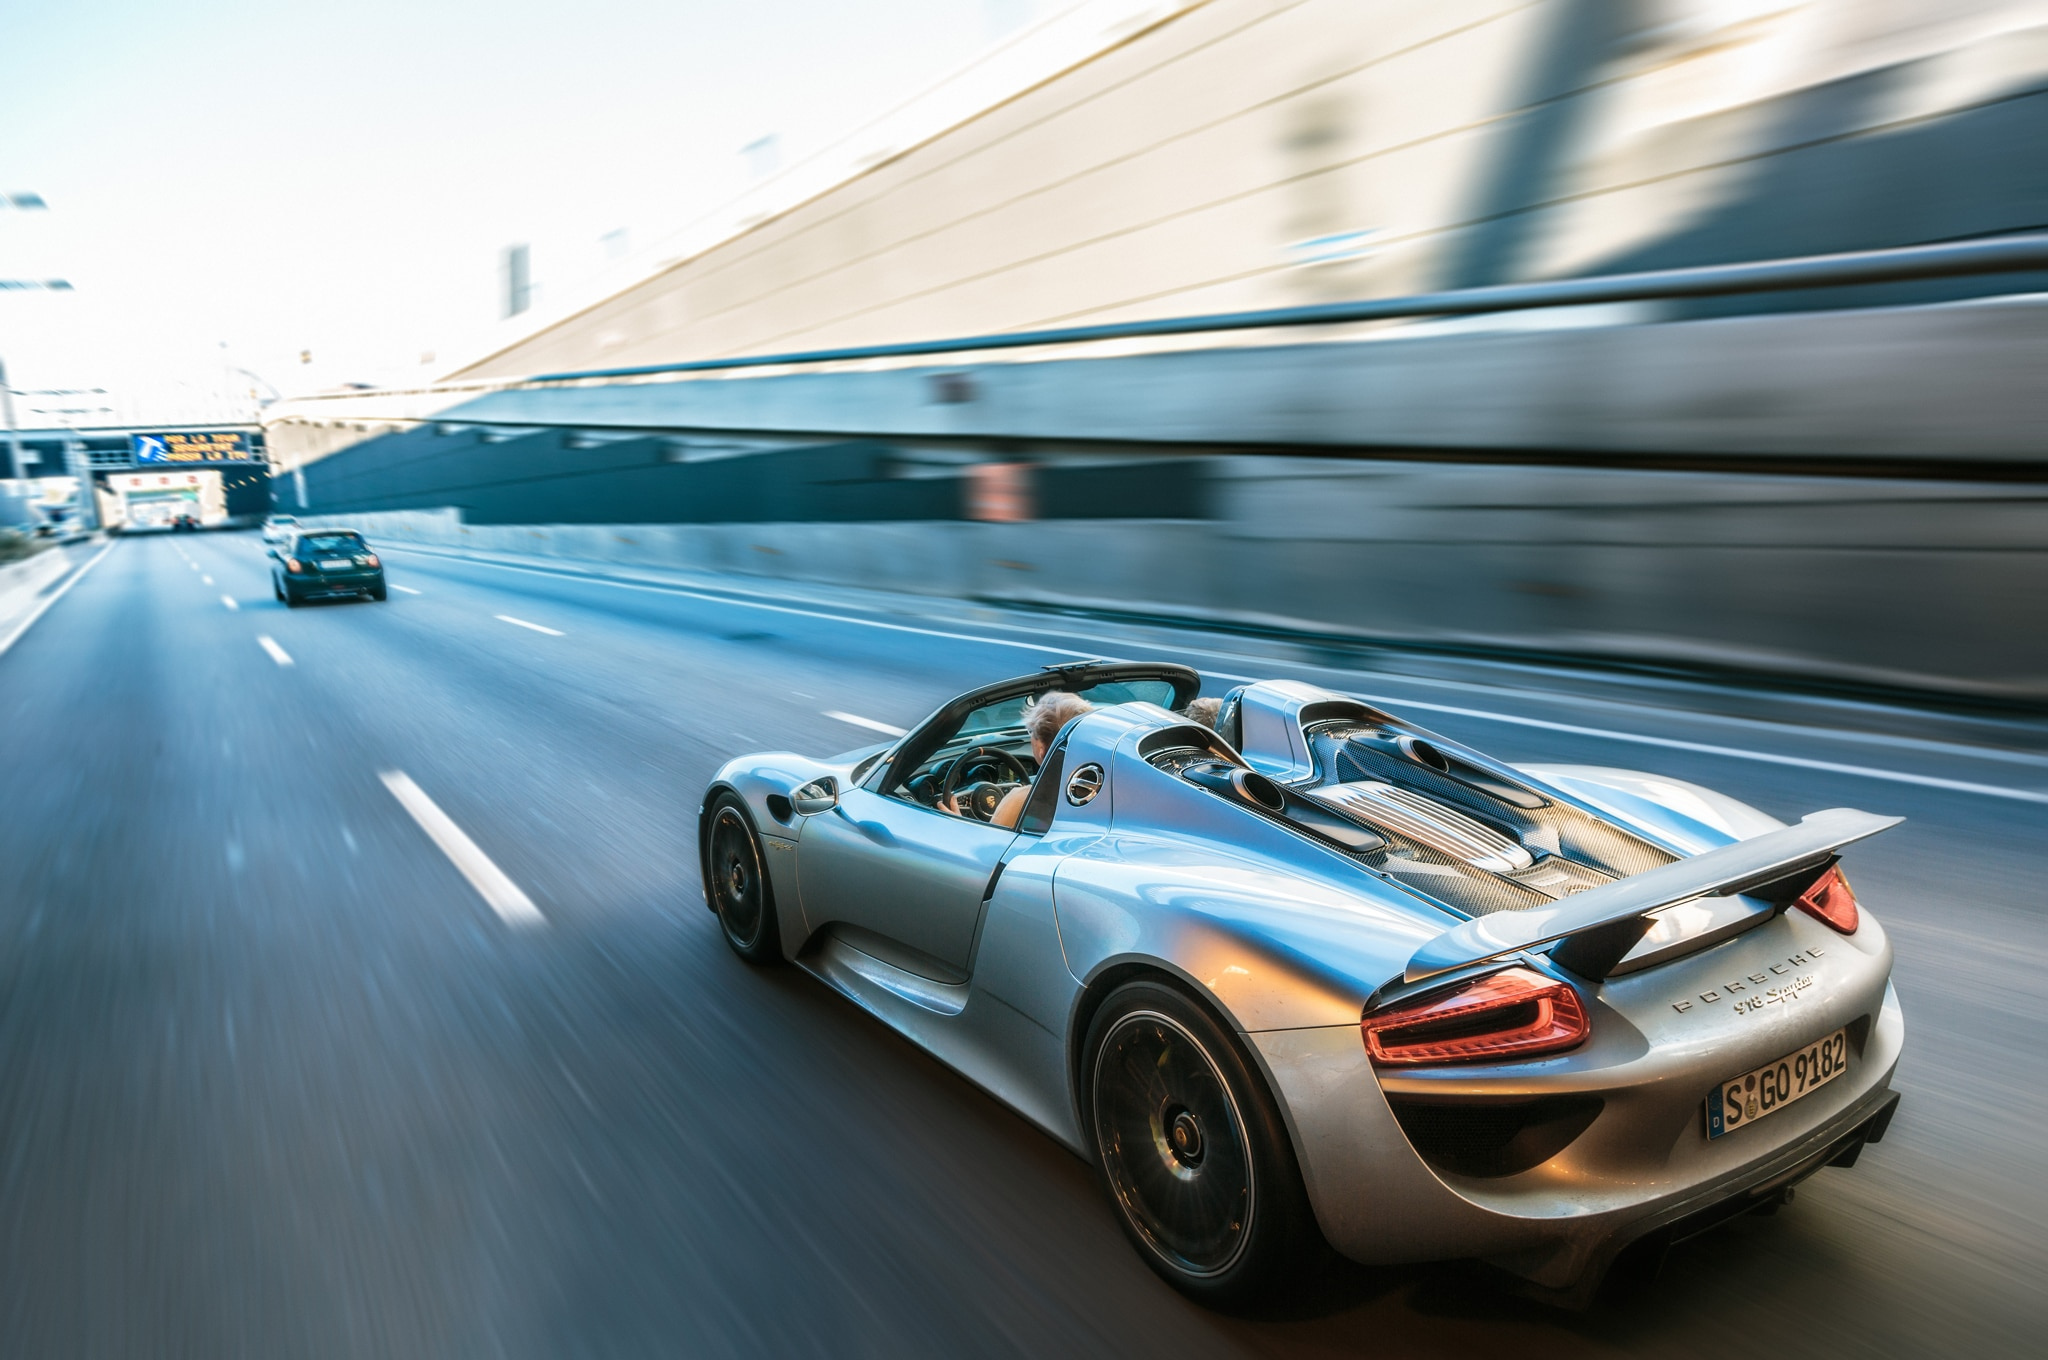 2014-Porsche-918-Spyder-in-Germany-rear-three-quarters-in-motion Cozy Porsche 918 Spyder Concept Price Real Racing 3 Cars Trend